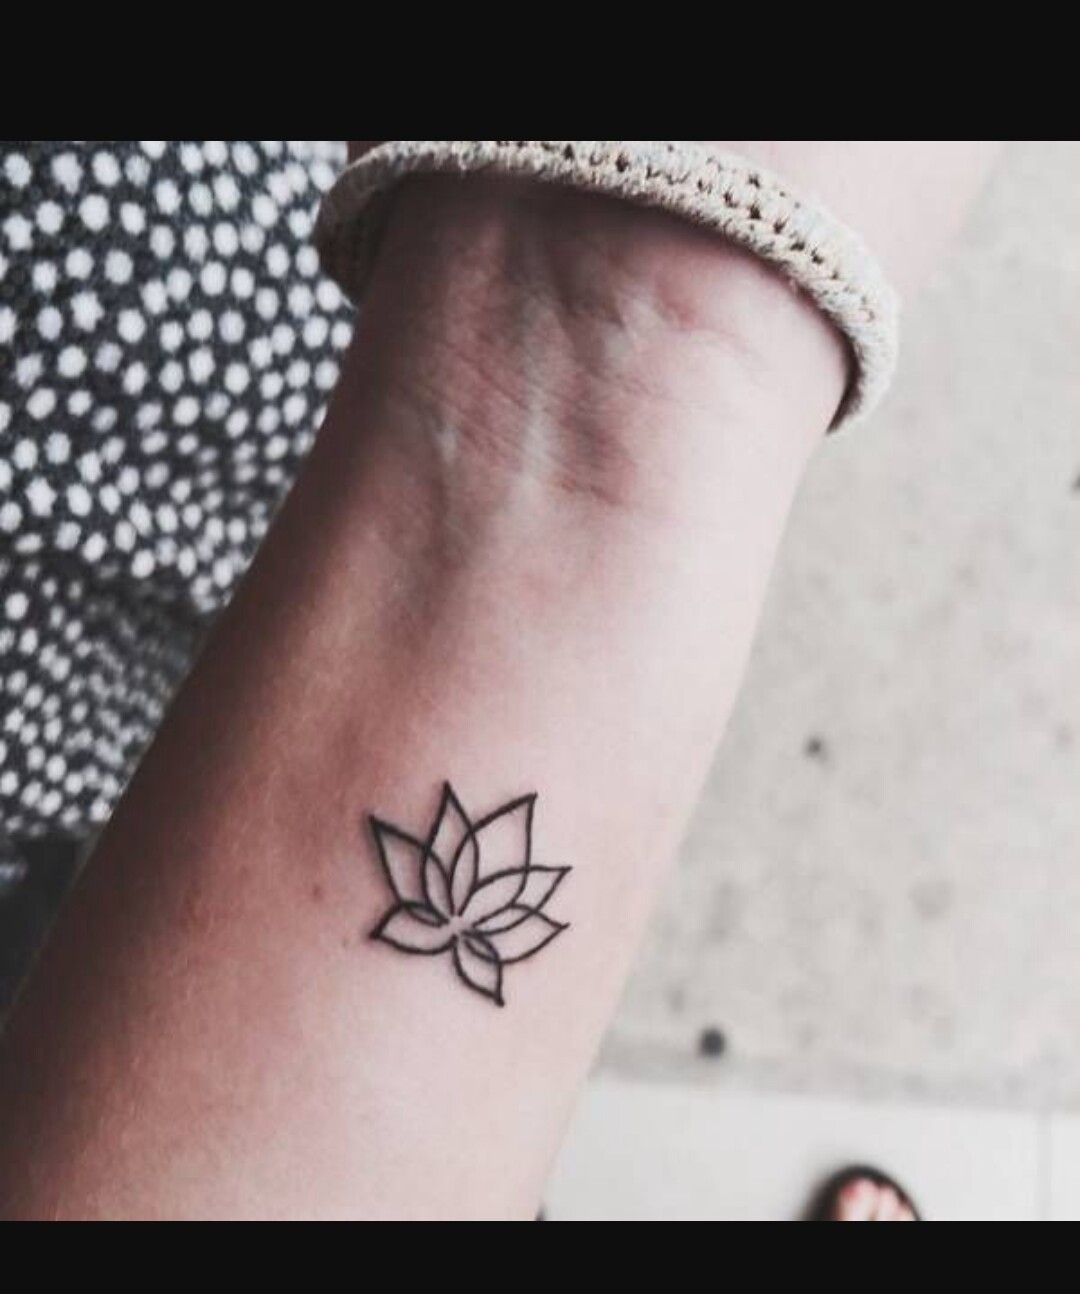 Pin by andrea johnson on body art pinterest lotus tattoo and tatoos small wrist tattoo of a lotus flower on amina izmirmasajfo Gallery